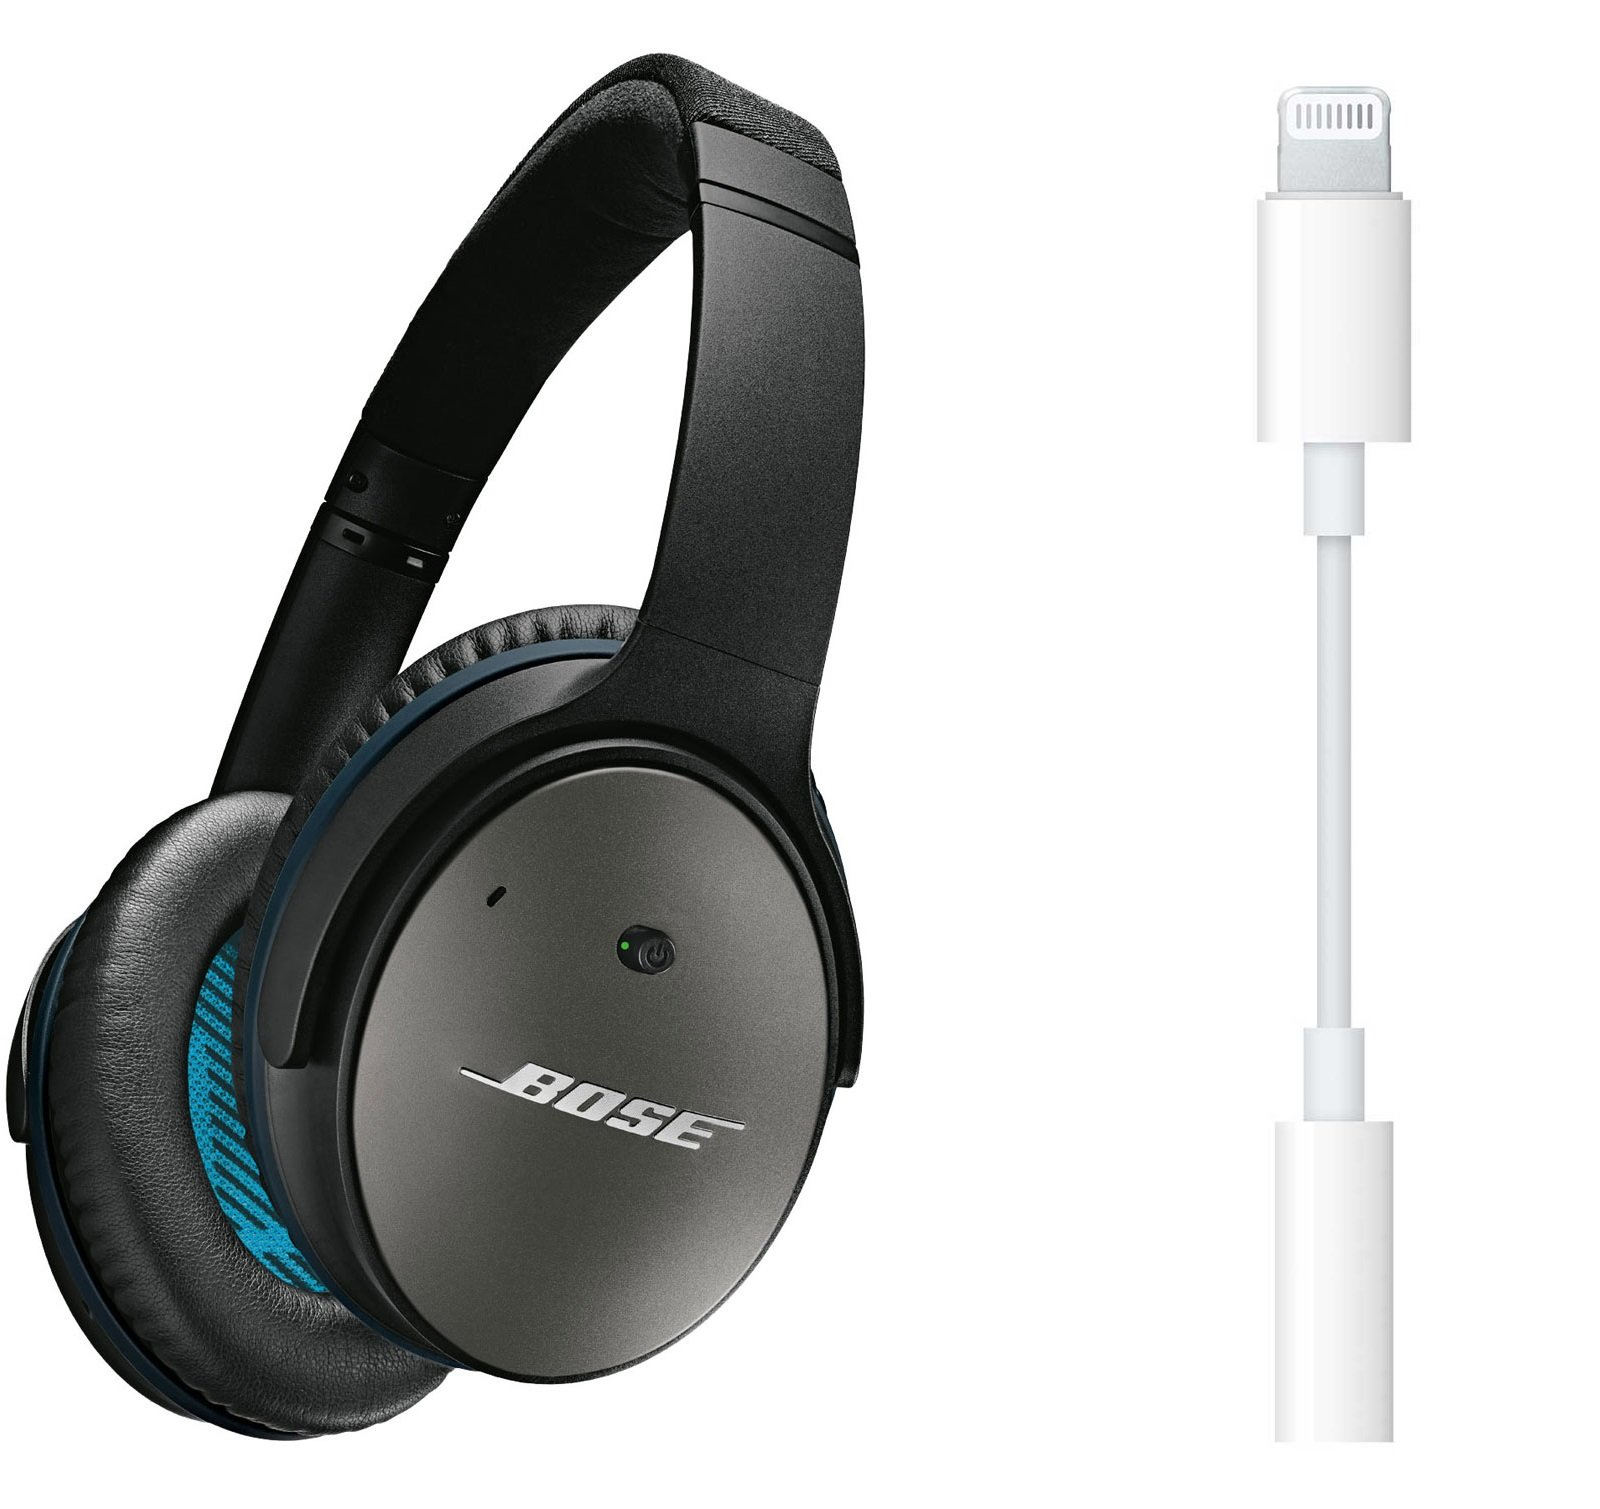 Bose QuietComfort 25 (3.5mm) Wired Over Ear Noise Cancelling Headphones for Apple Devices, Black Bundle with Lightning to 3.5mm Adapter